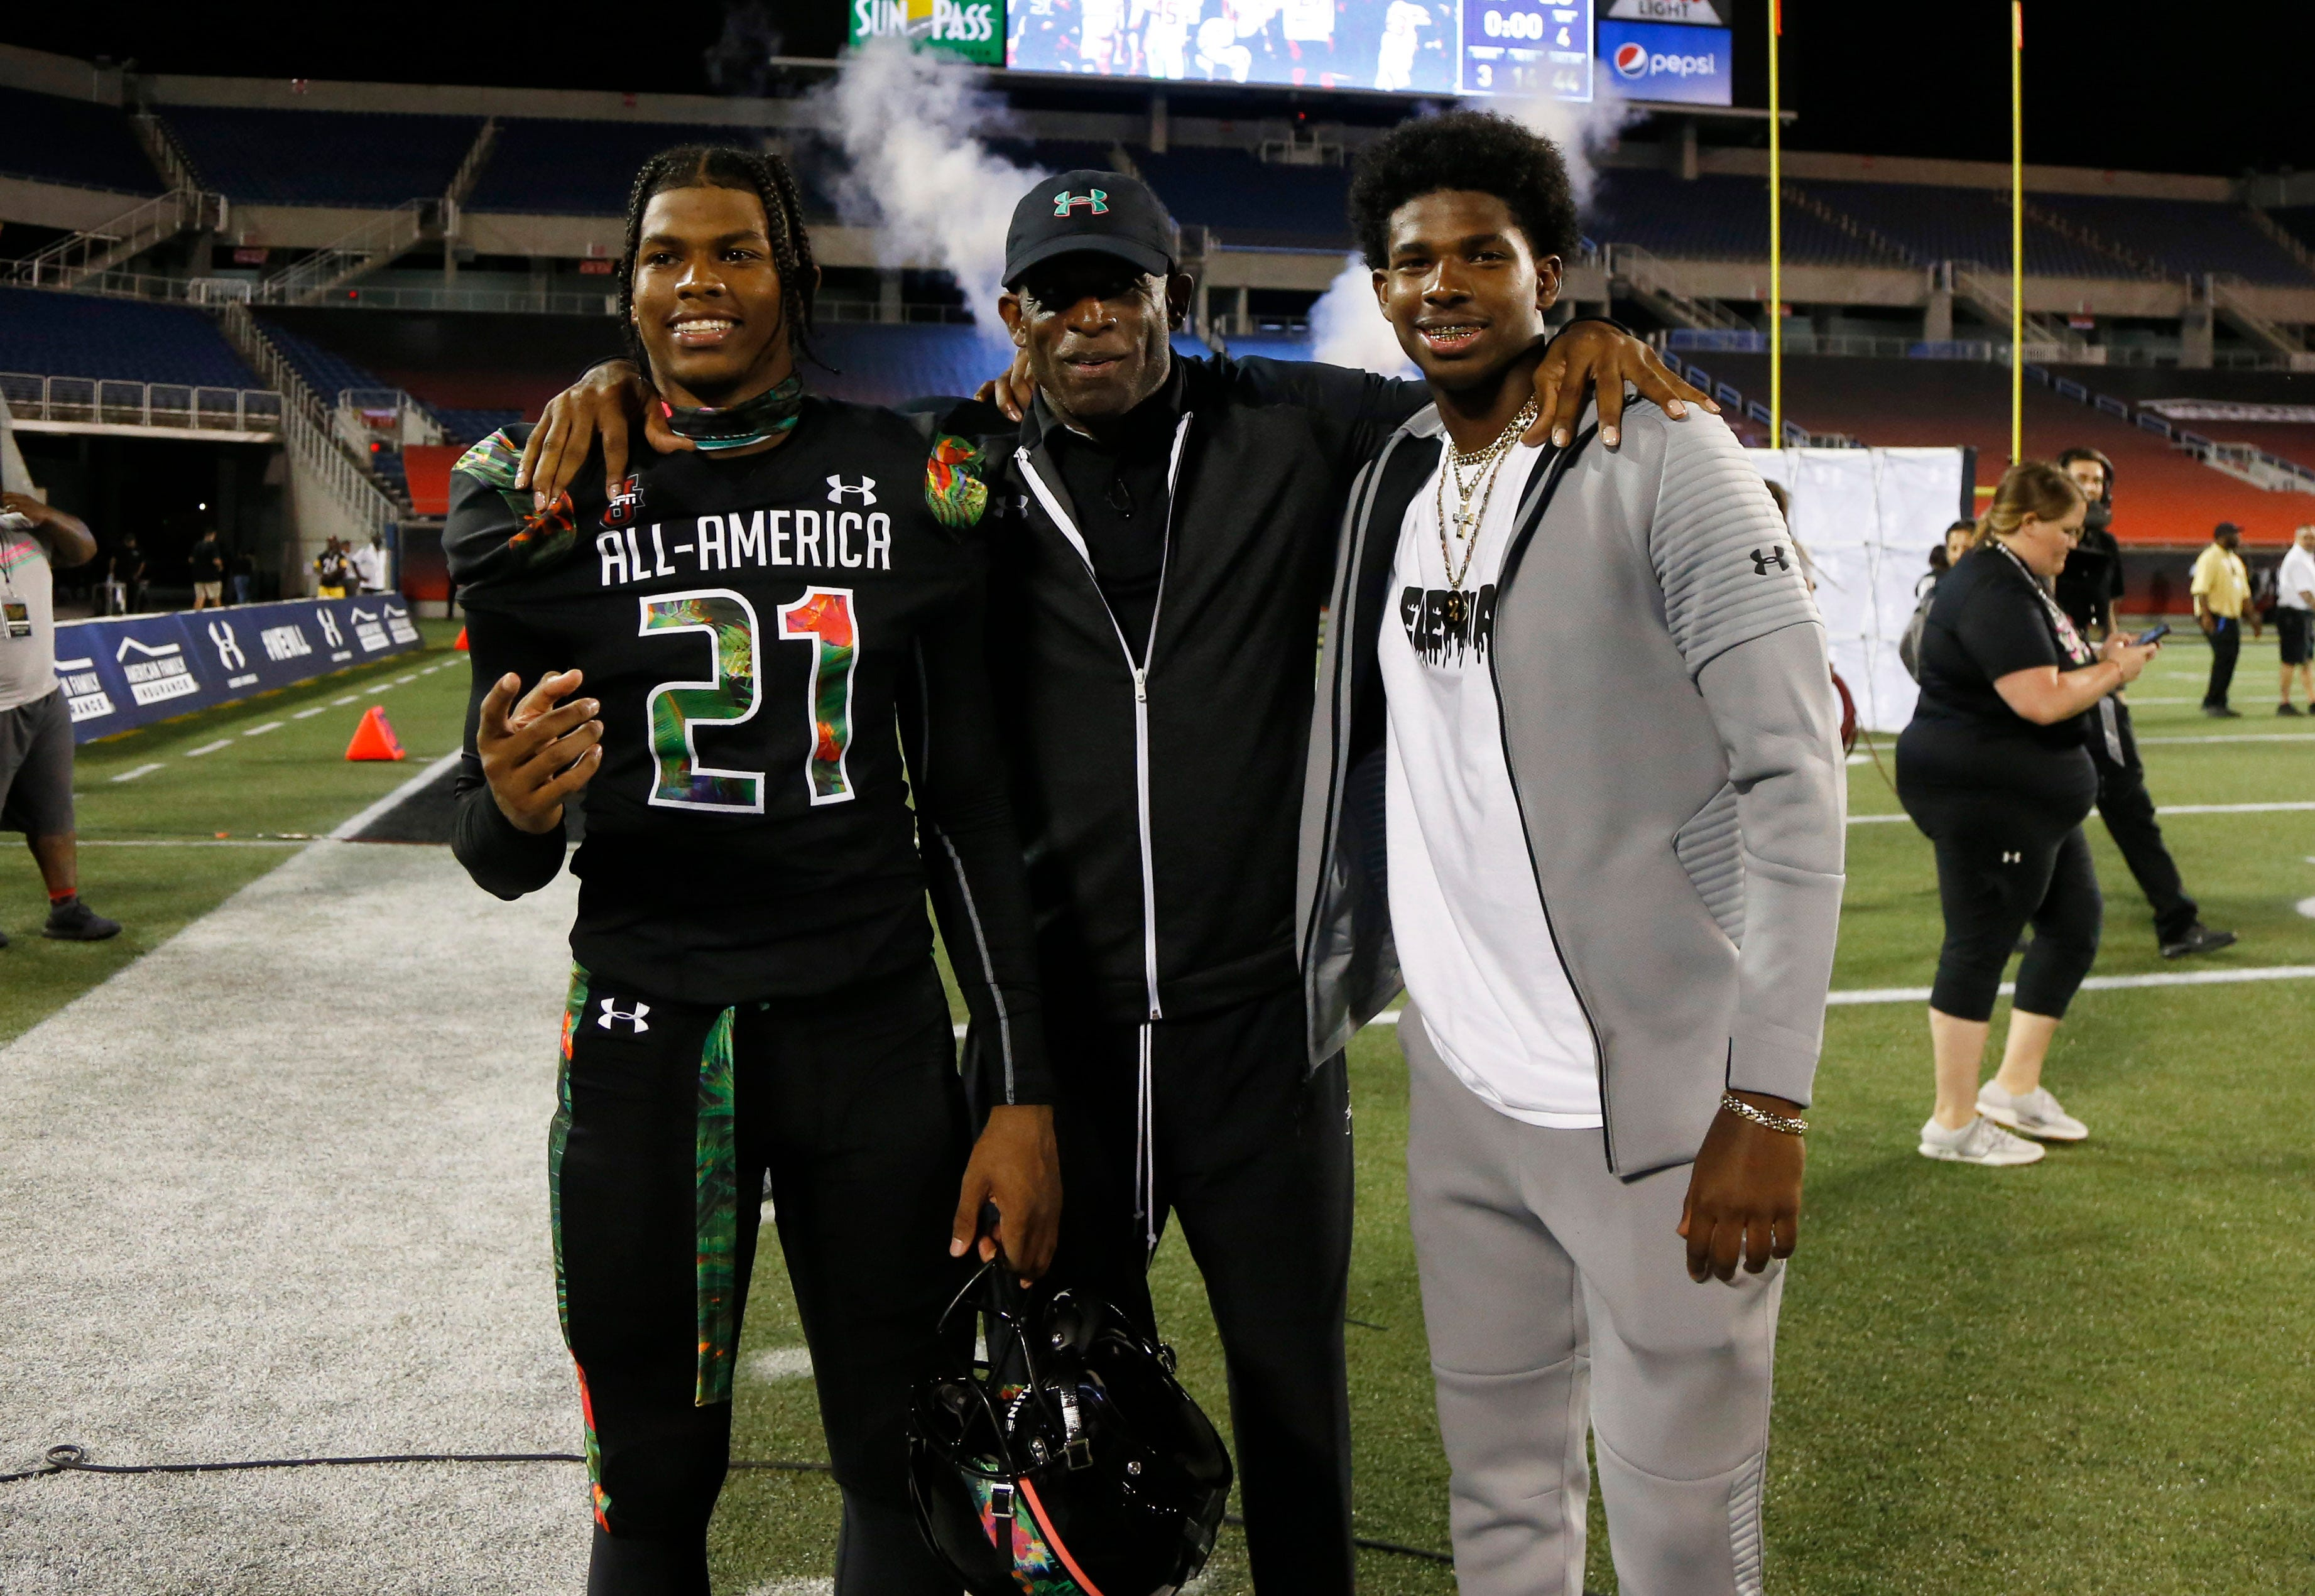 Shilo Sanders, son of Hall of Famer Deion Sanders, commits to play at South Carolina